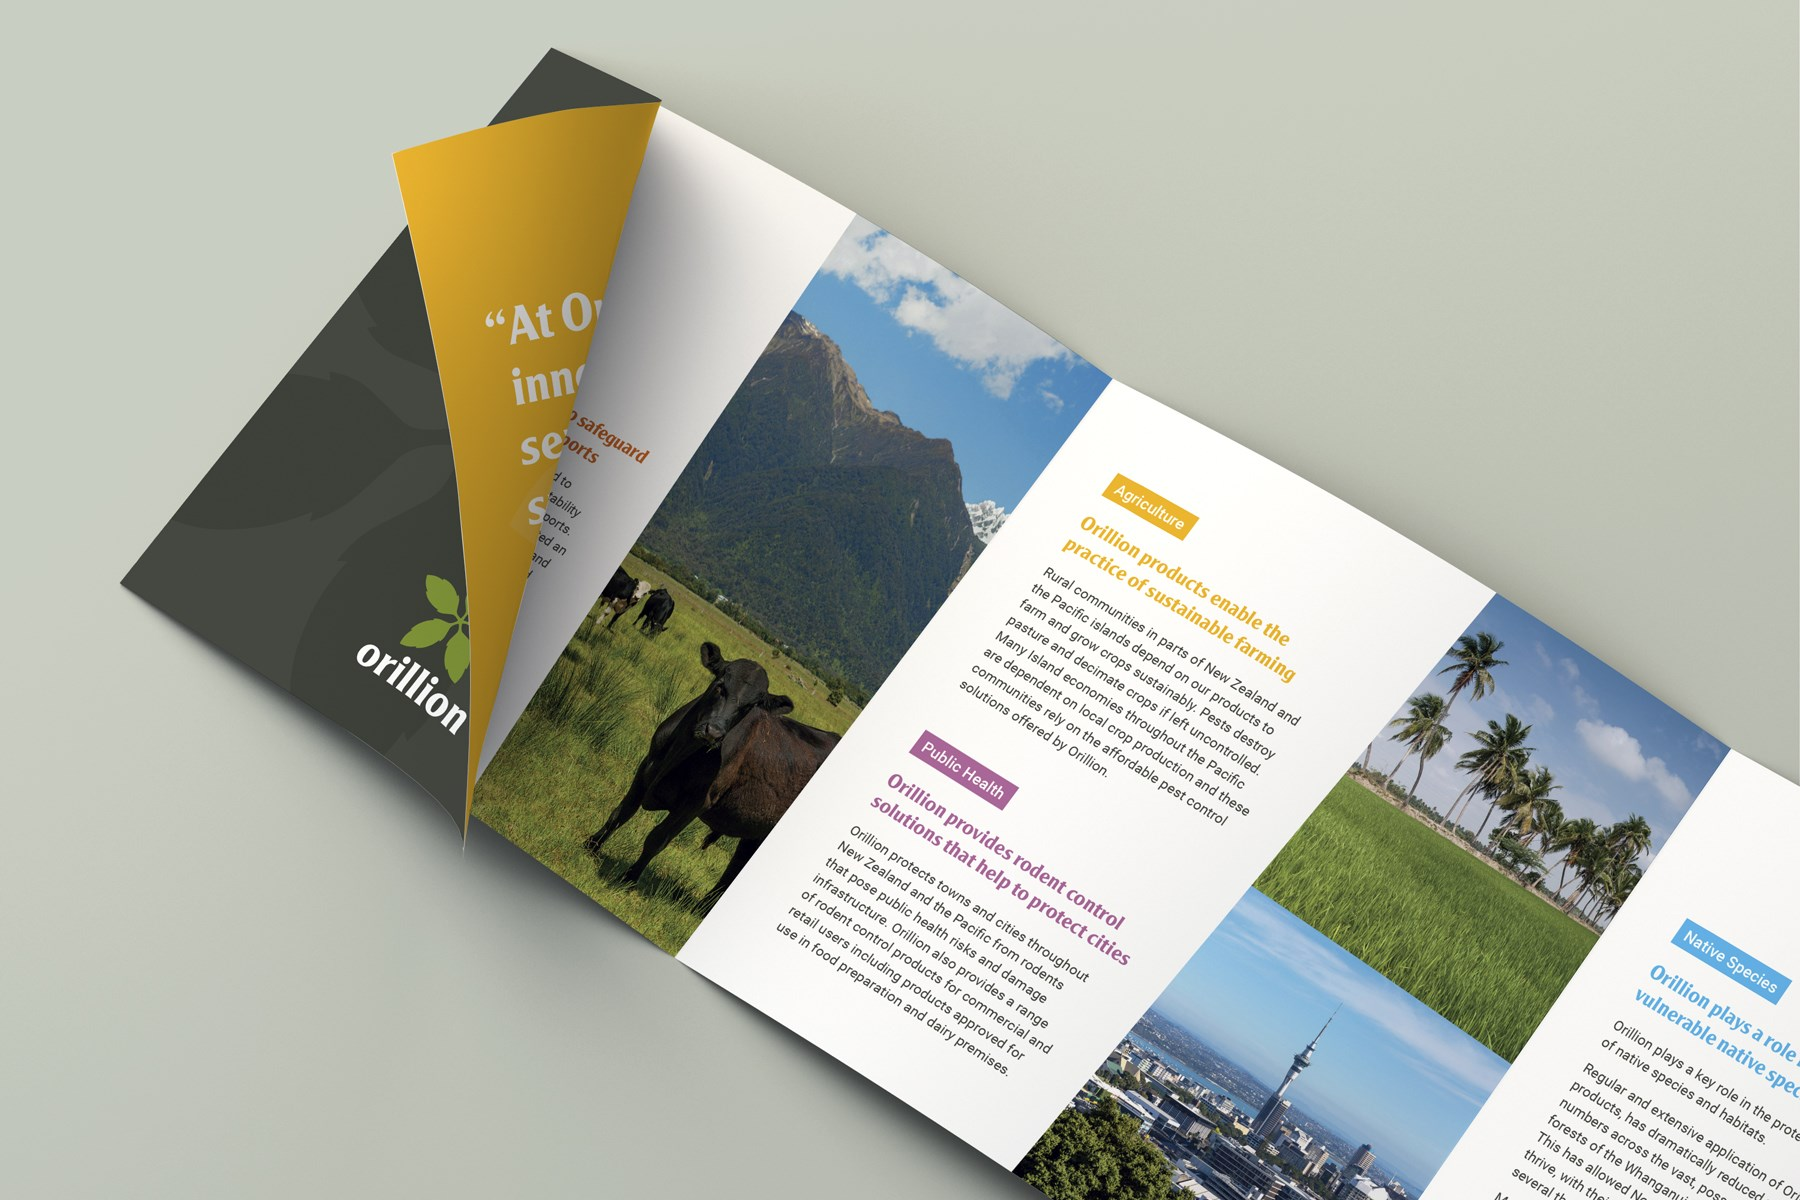 Orillion-Square4-Fold-Brochure03.jpg